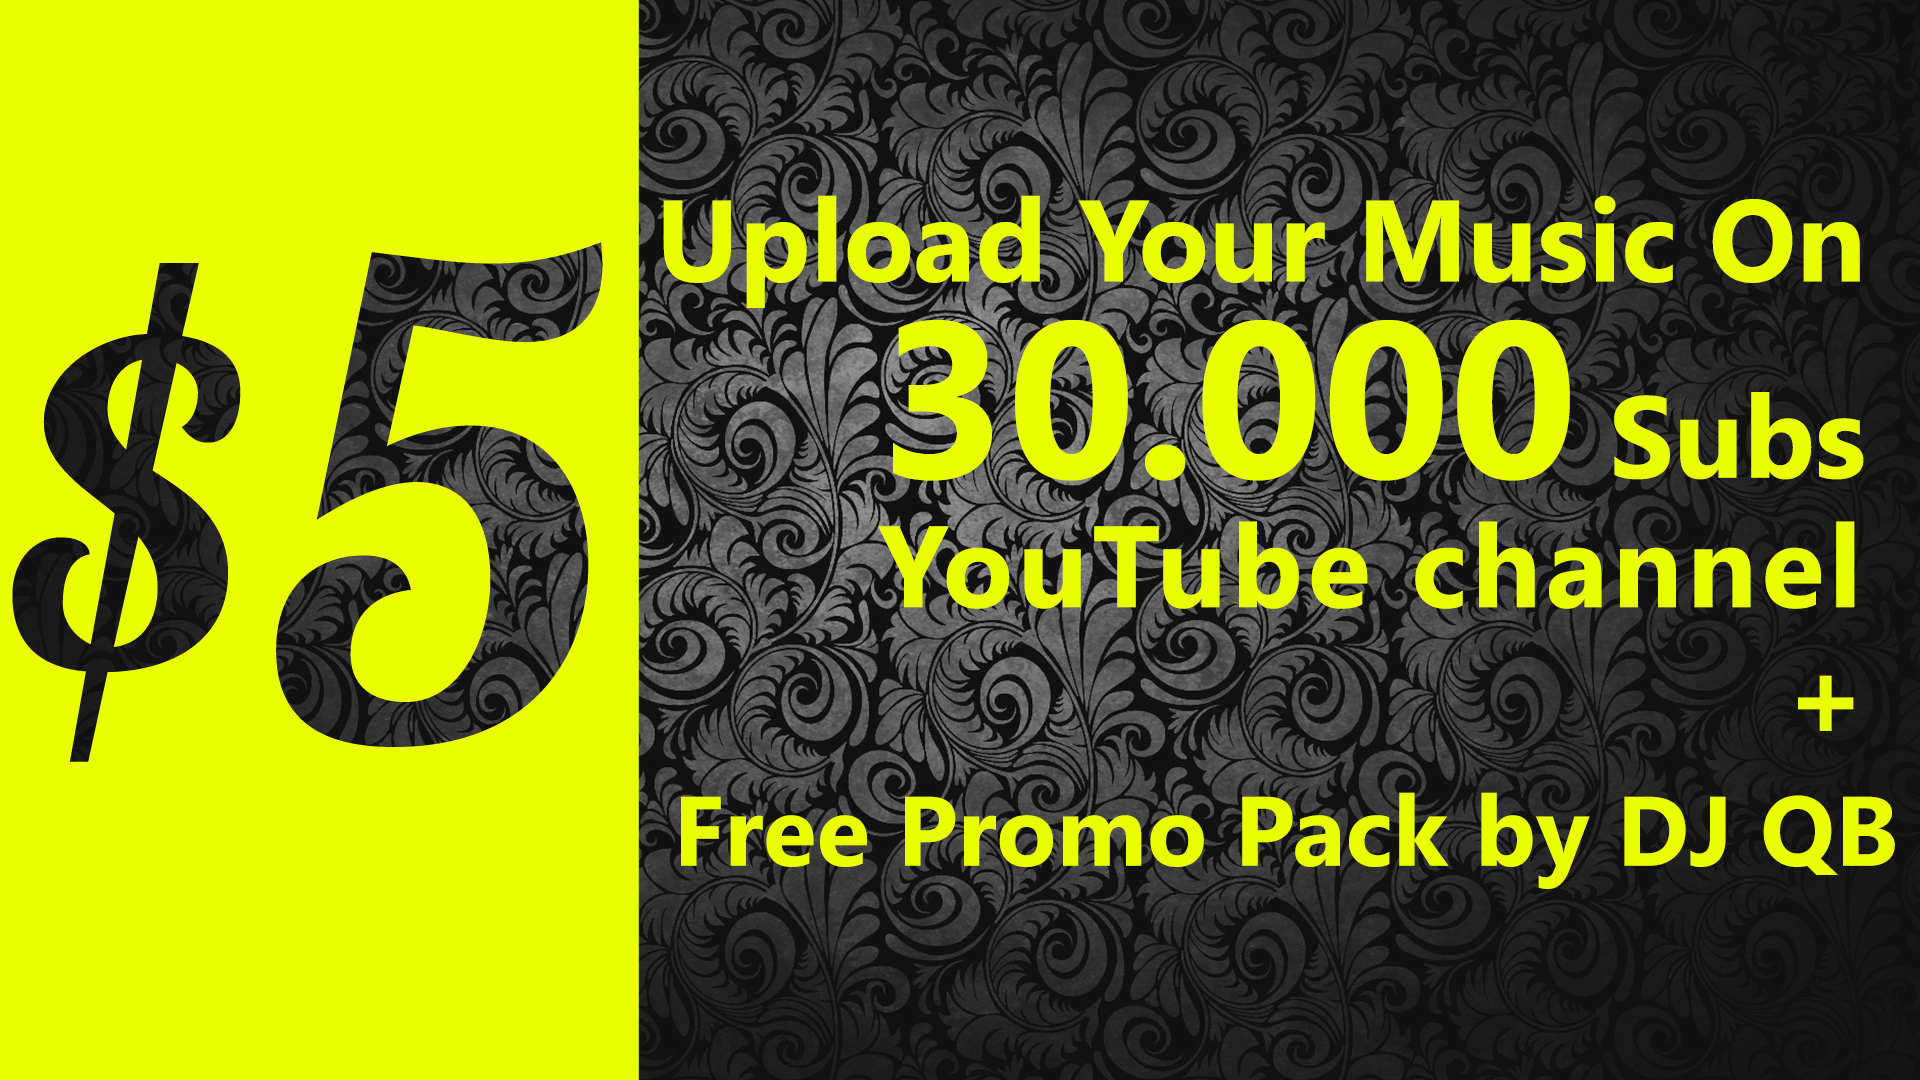 Upload your music on 31.000+ Subscribers YouTube chan...